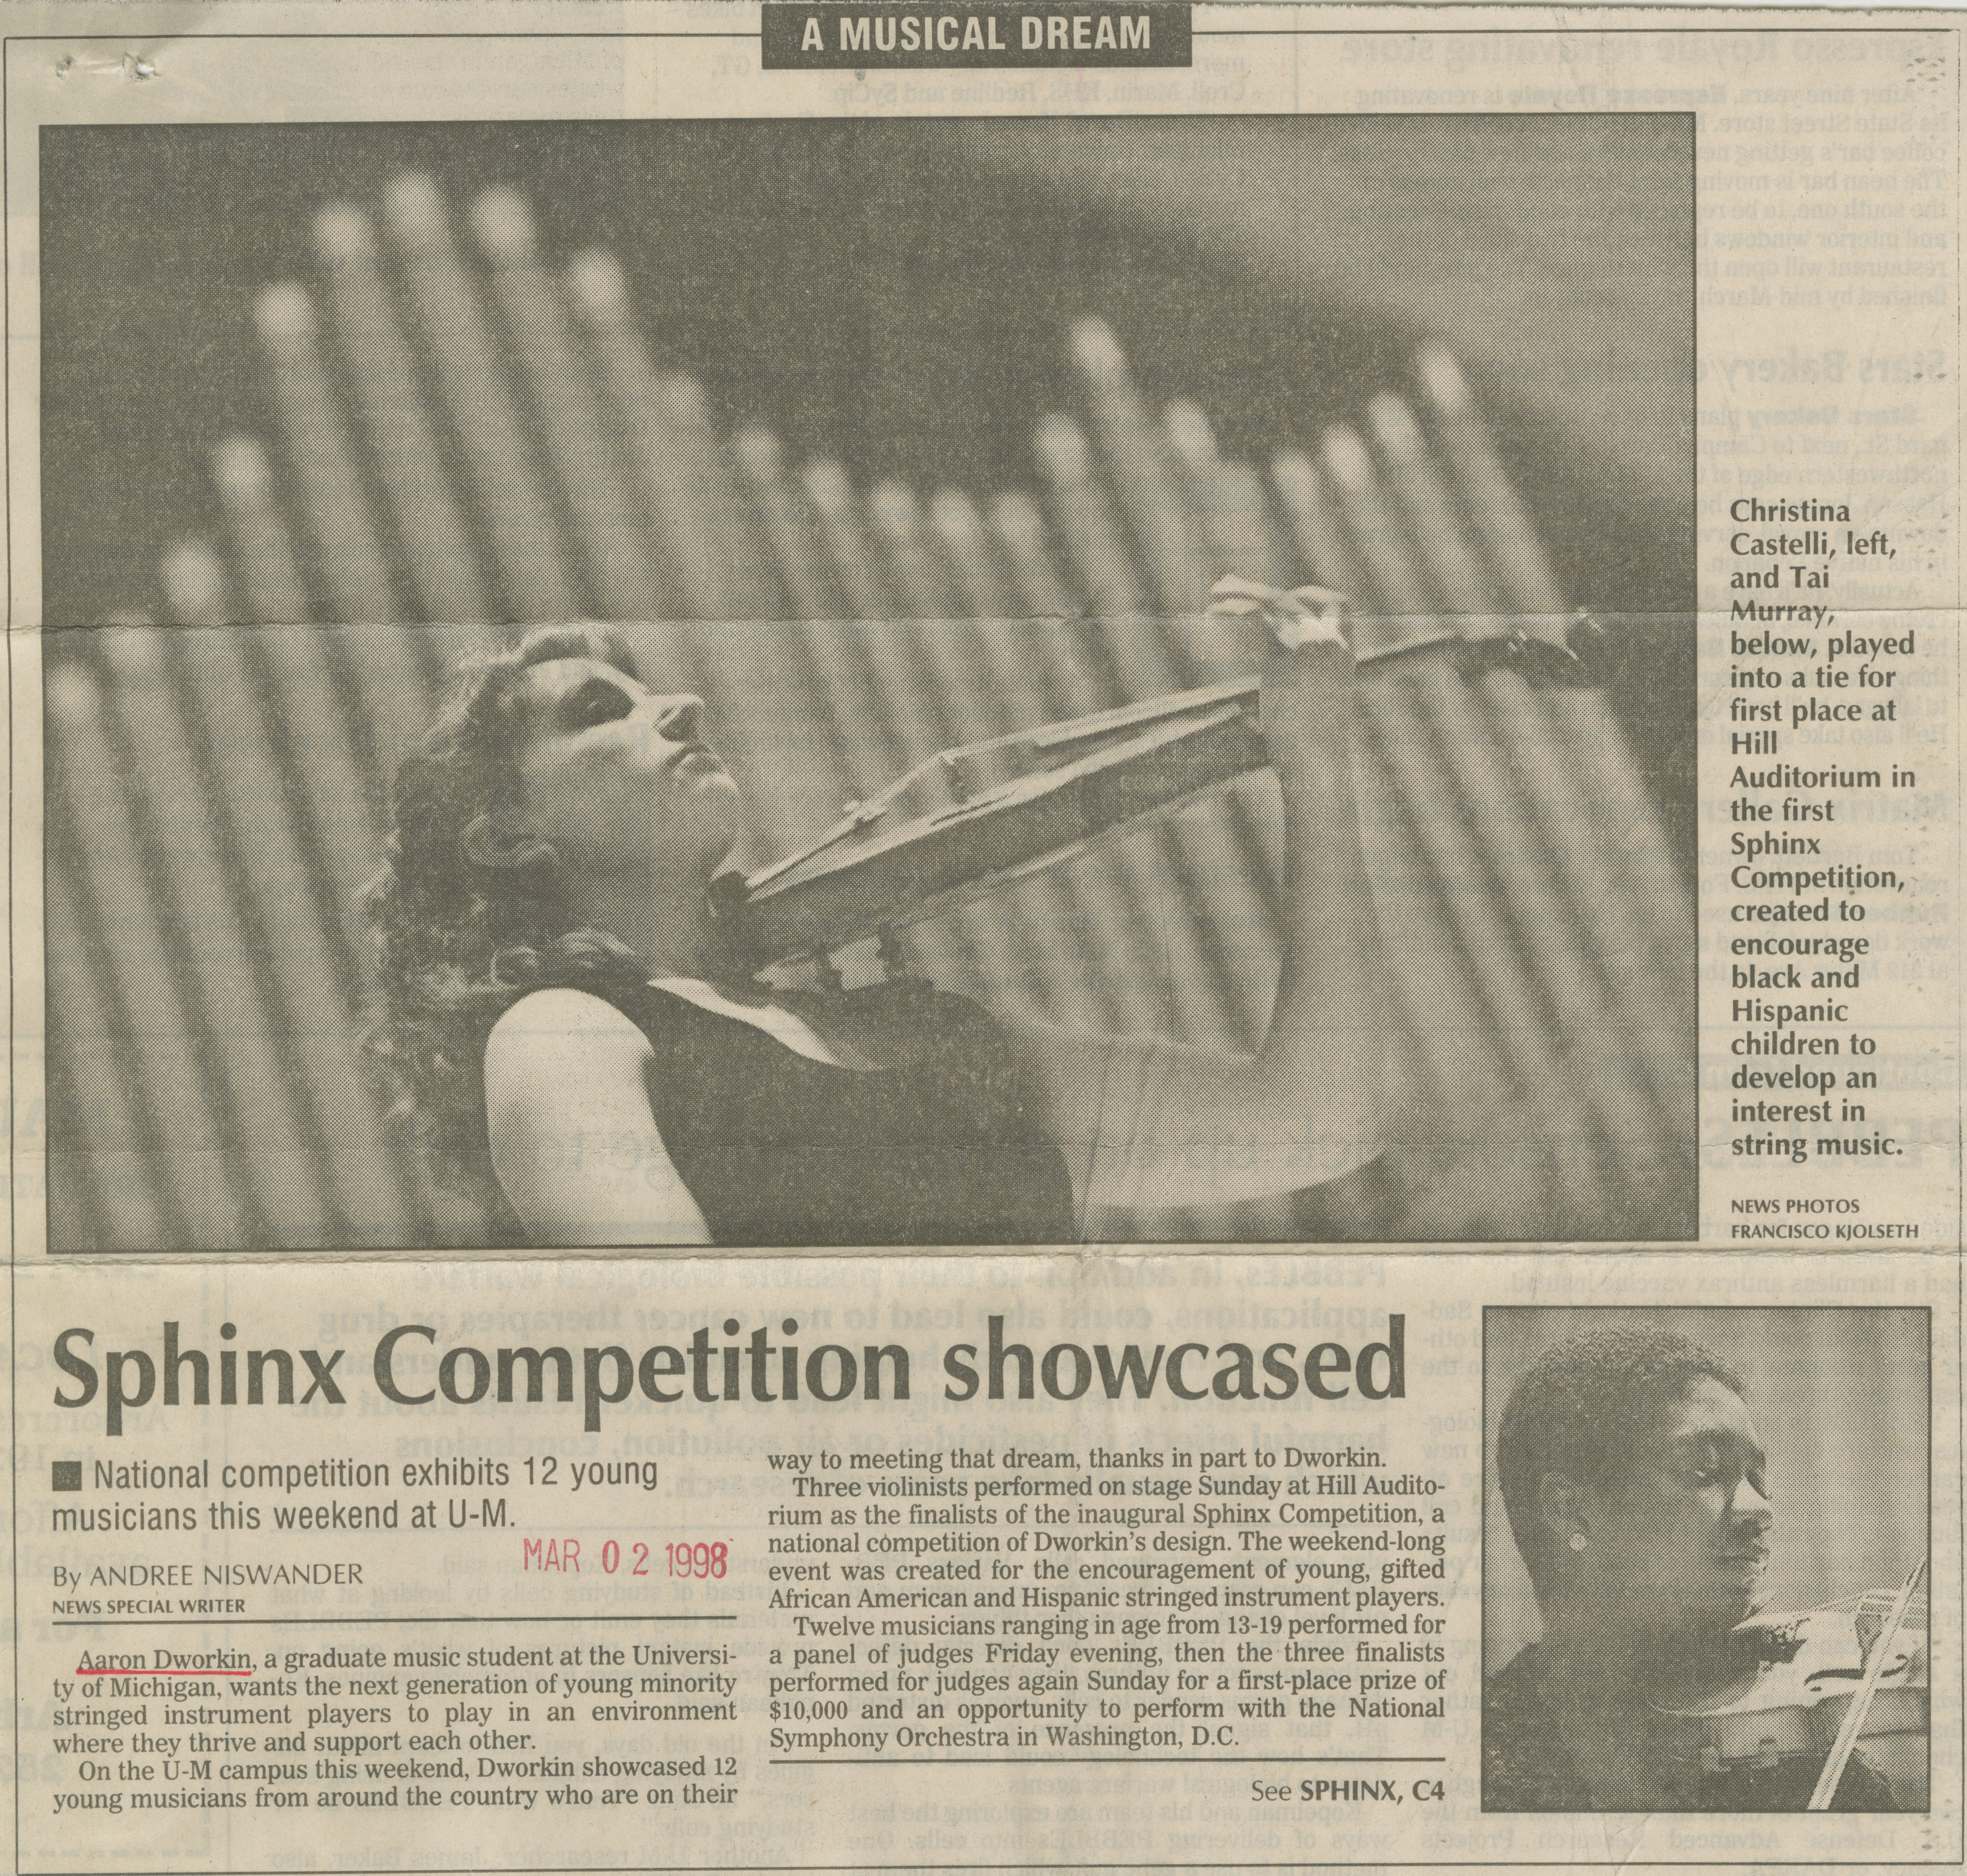 Sphinx Competition showcased image